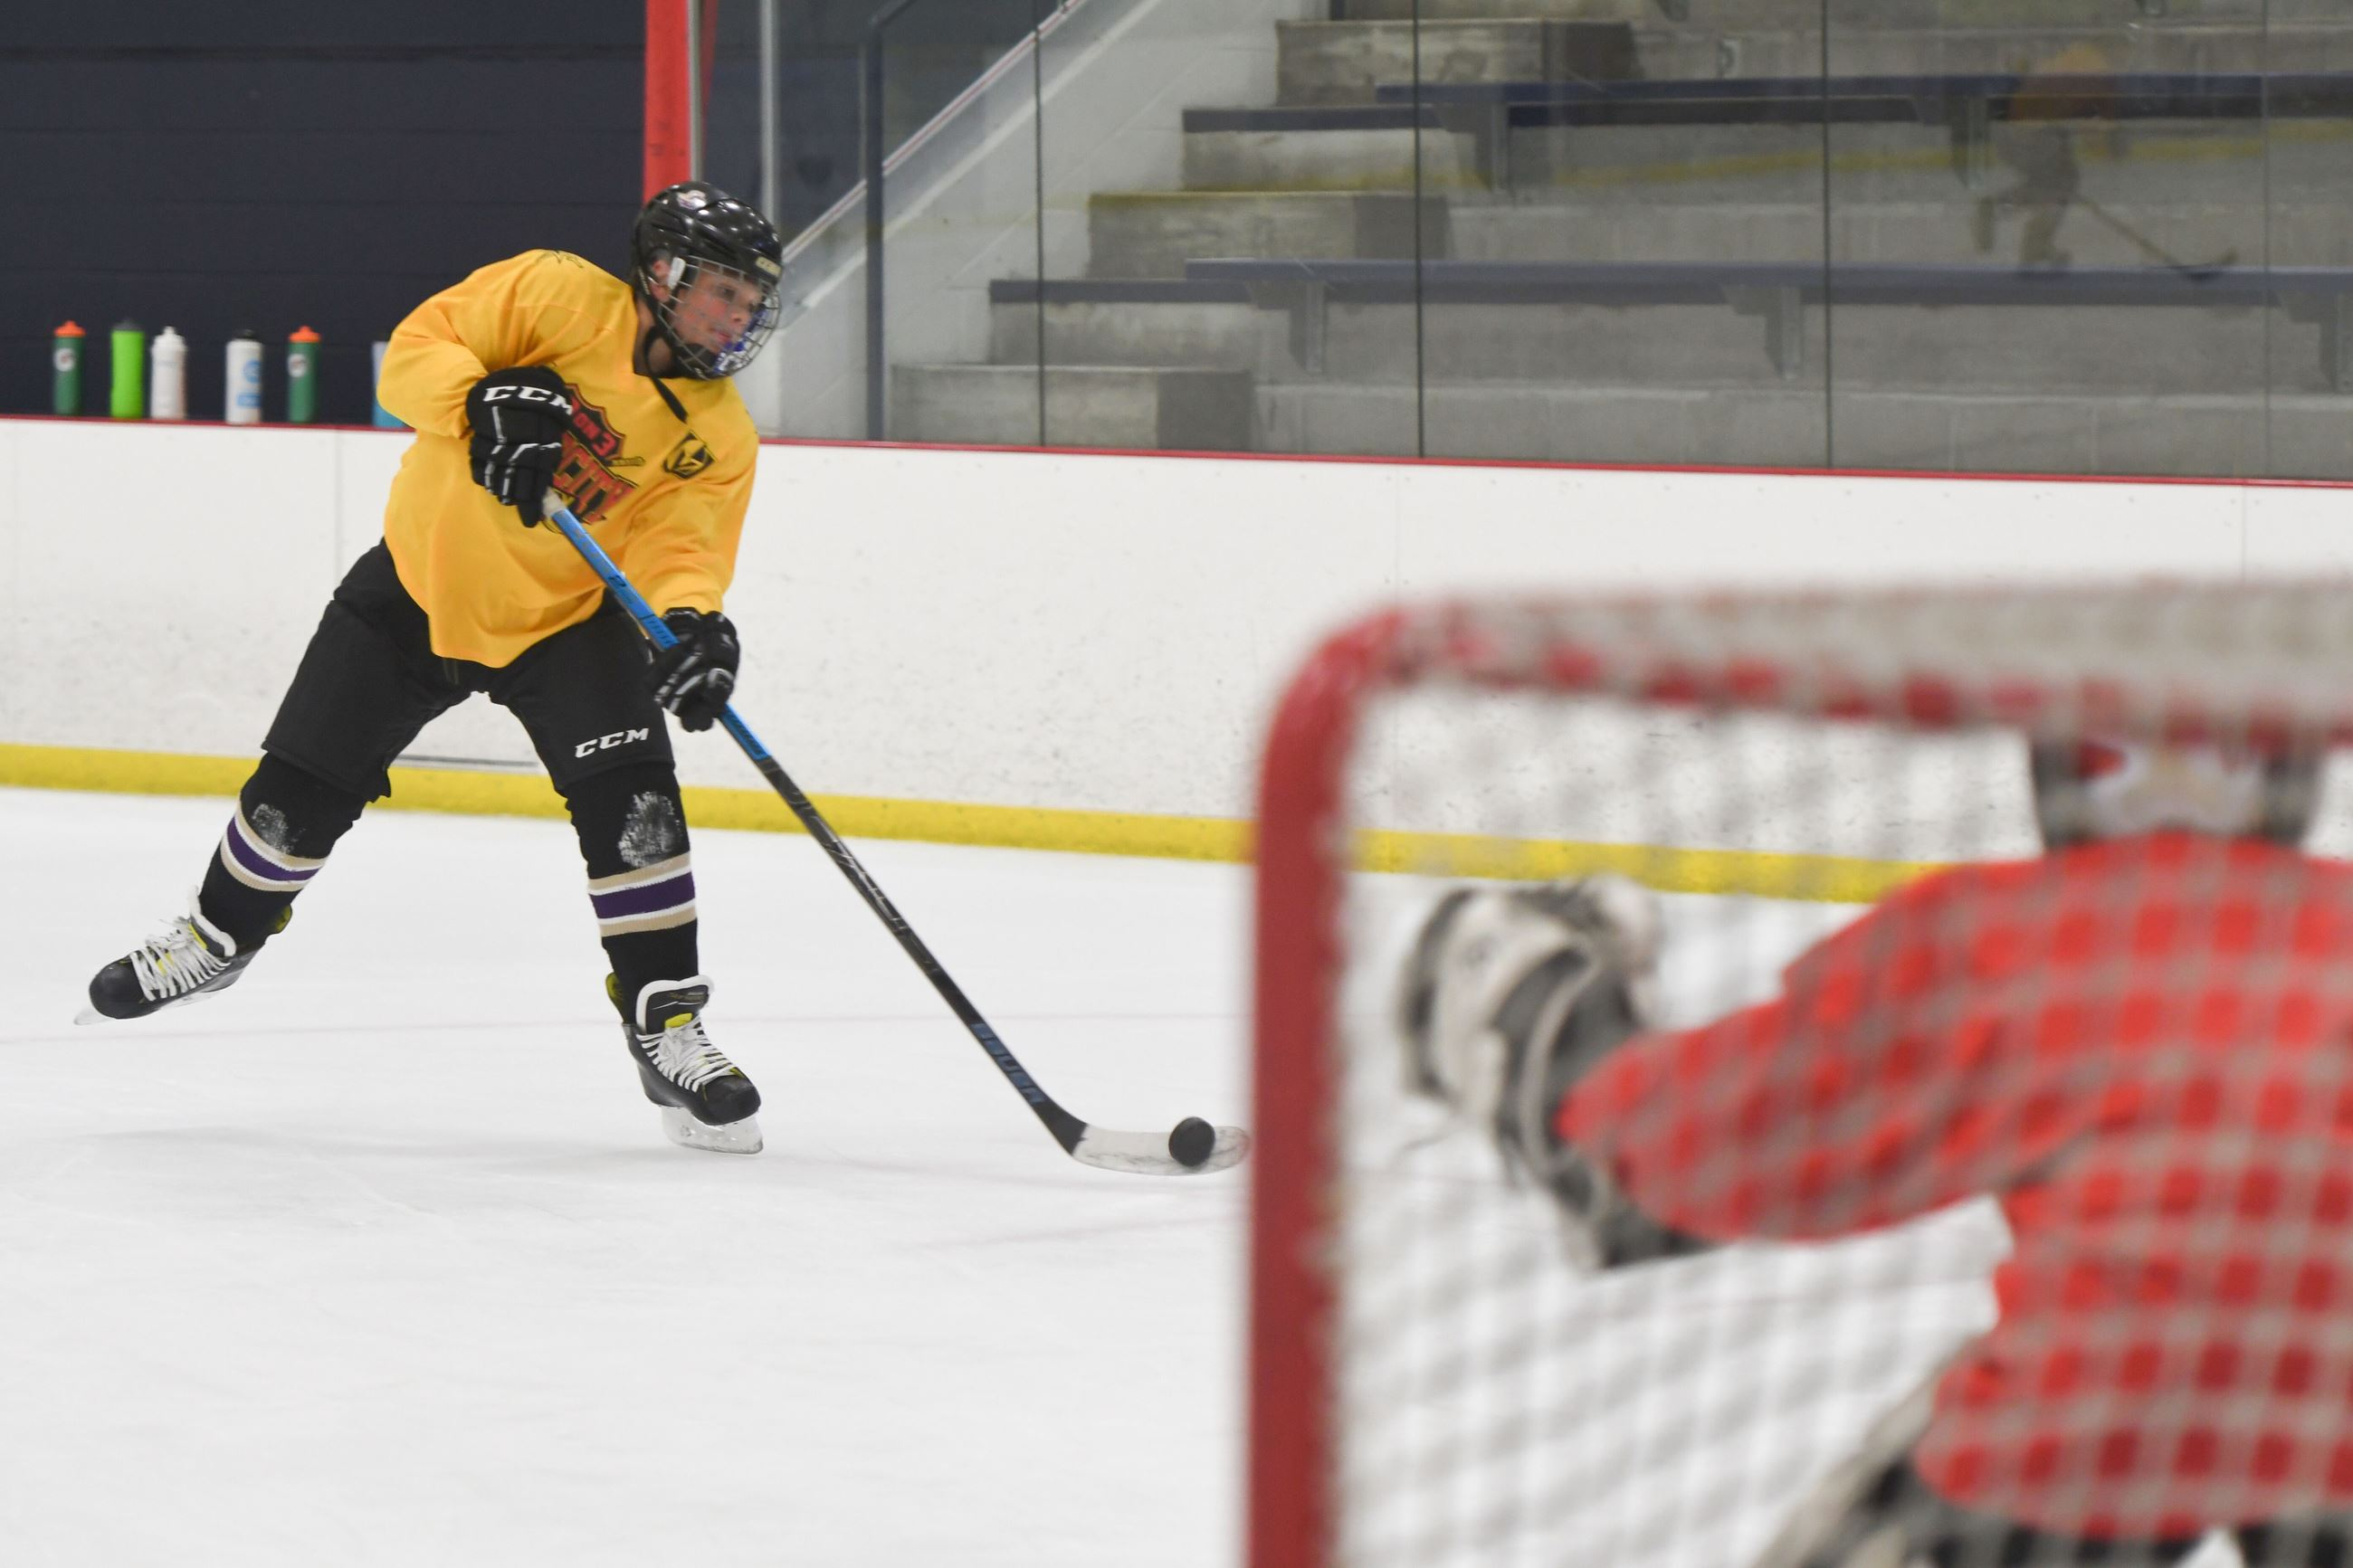 Kid shooting puck at goalie